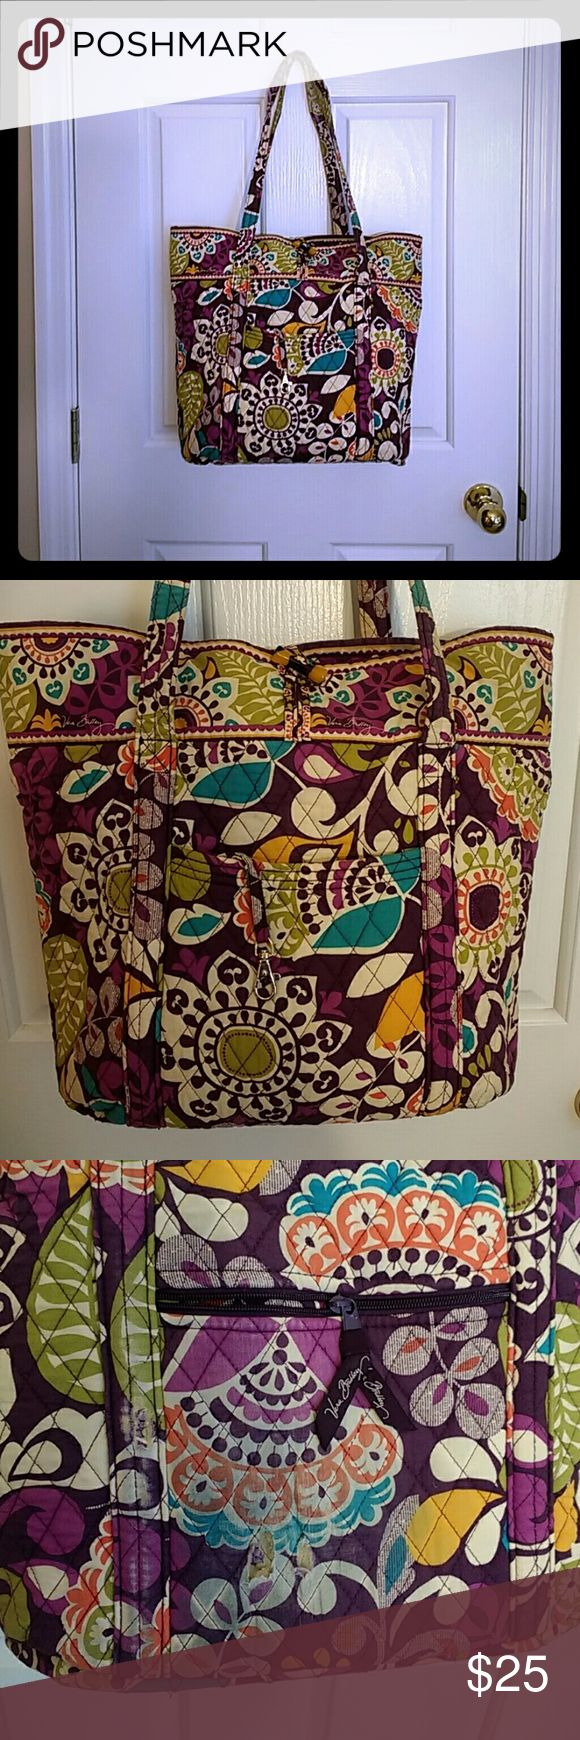 Vera Bradley Large Plum Crazy Tote FREE ID case! This is a Vera Bradley Large tote in the plum crazy retired pattern. Comes with free matching ID holder. These bags make perfect book bags and i absolutely adore them! I'm getting rid of some of my older patterns to make room for new ones. This bag has been professionally cleaned and I photoed the wear on the back side, straps and ID holder. The colors are still insanely vibrant which isn't common on used Veras. Comment with questions. I'm…